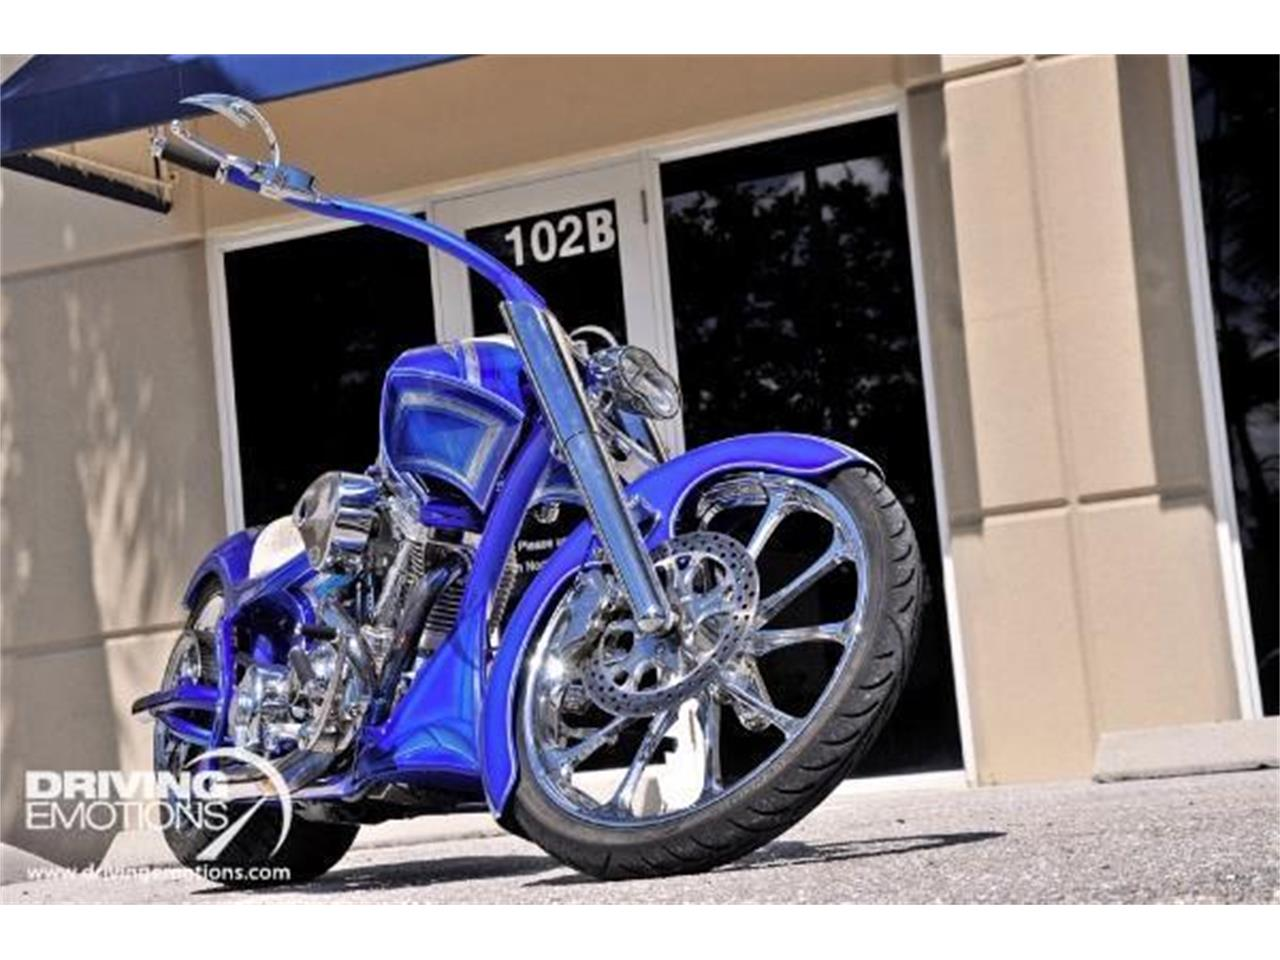 2006 Custom Motorcycle (CC-1247608) for sale in West Palm Beach, Florida